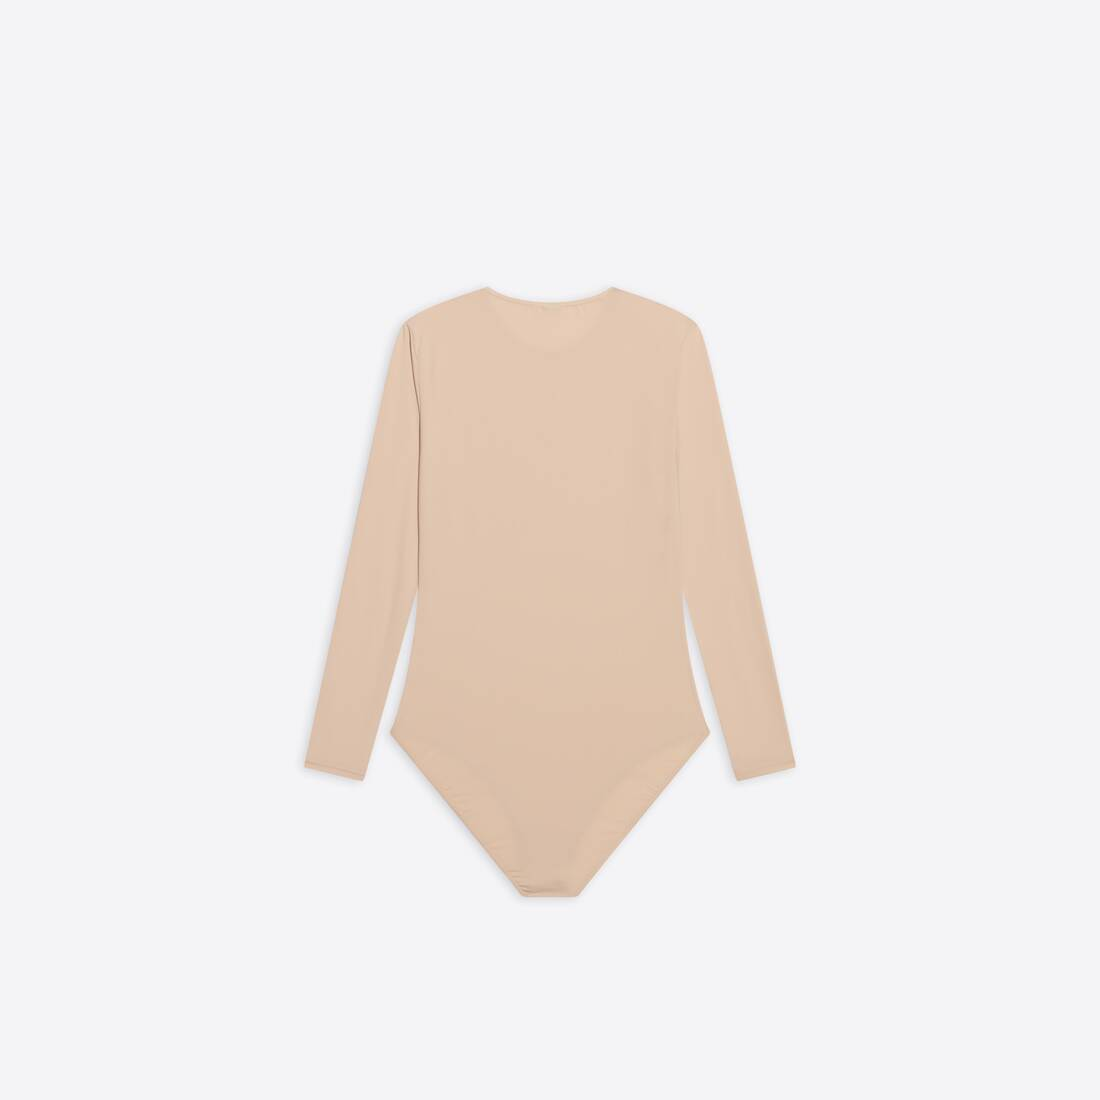 Display zoomed version of body long sleeve top 2